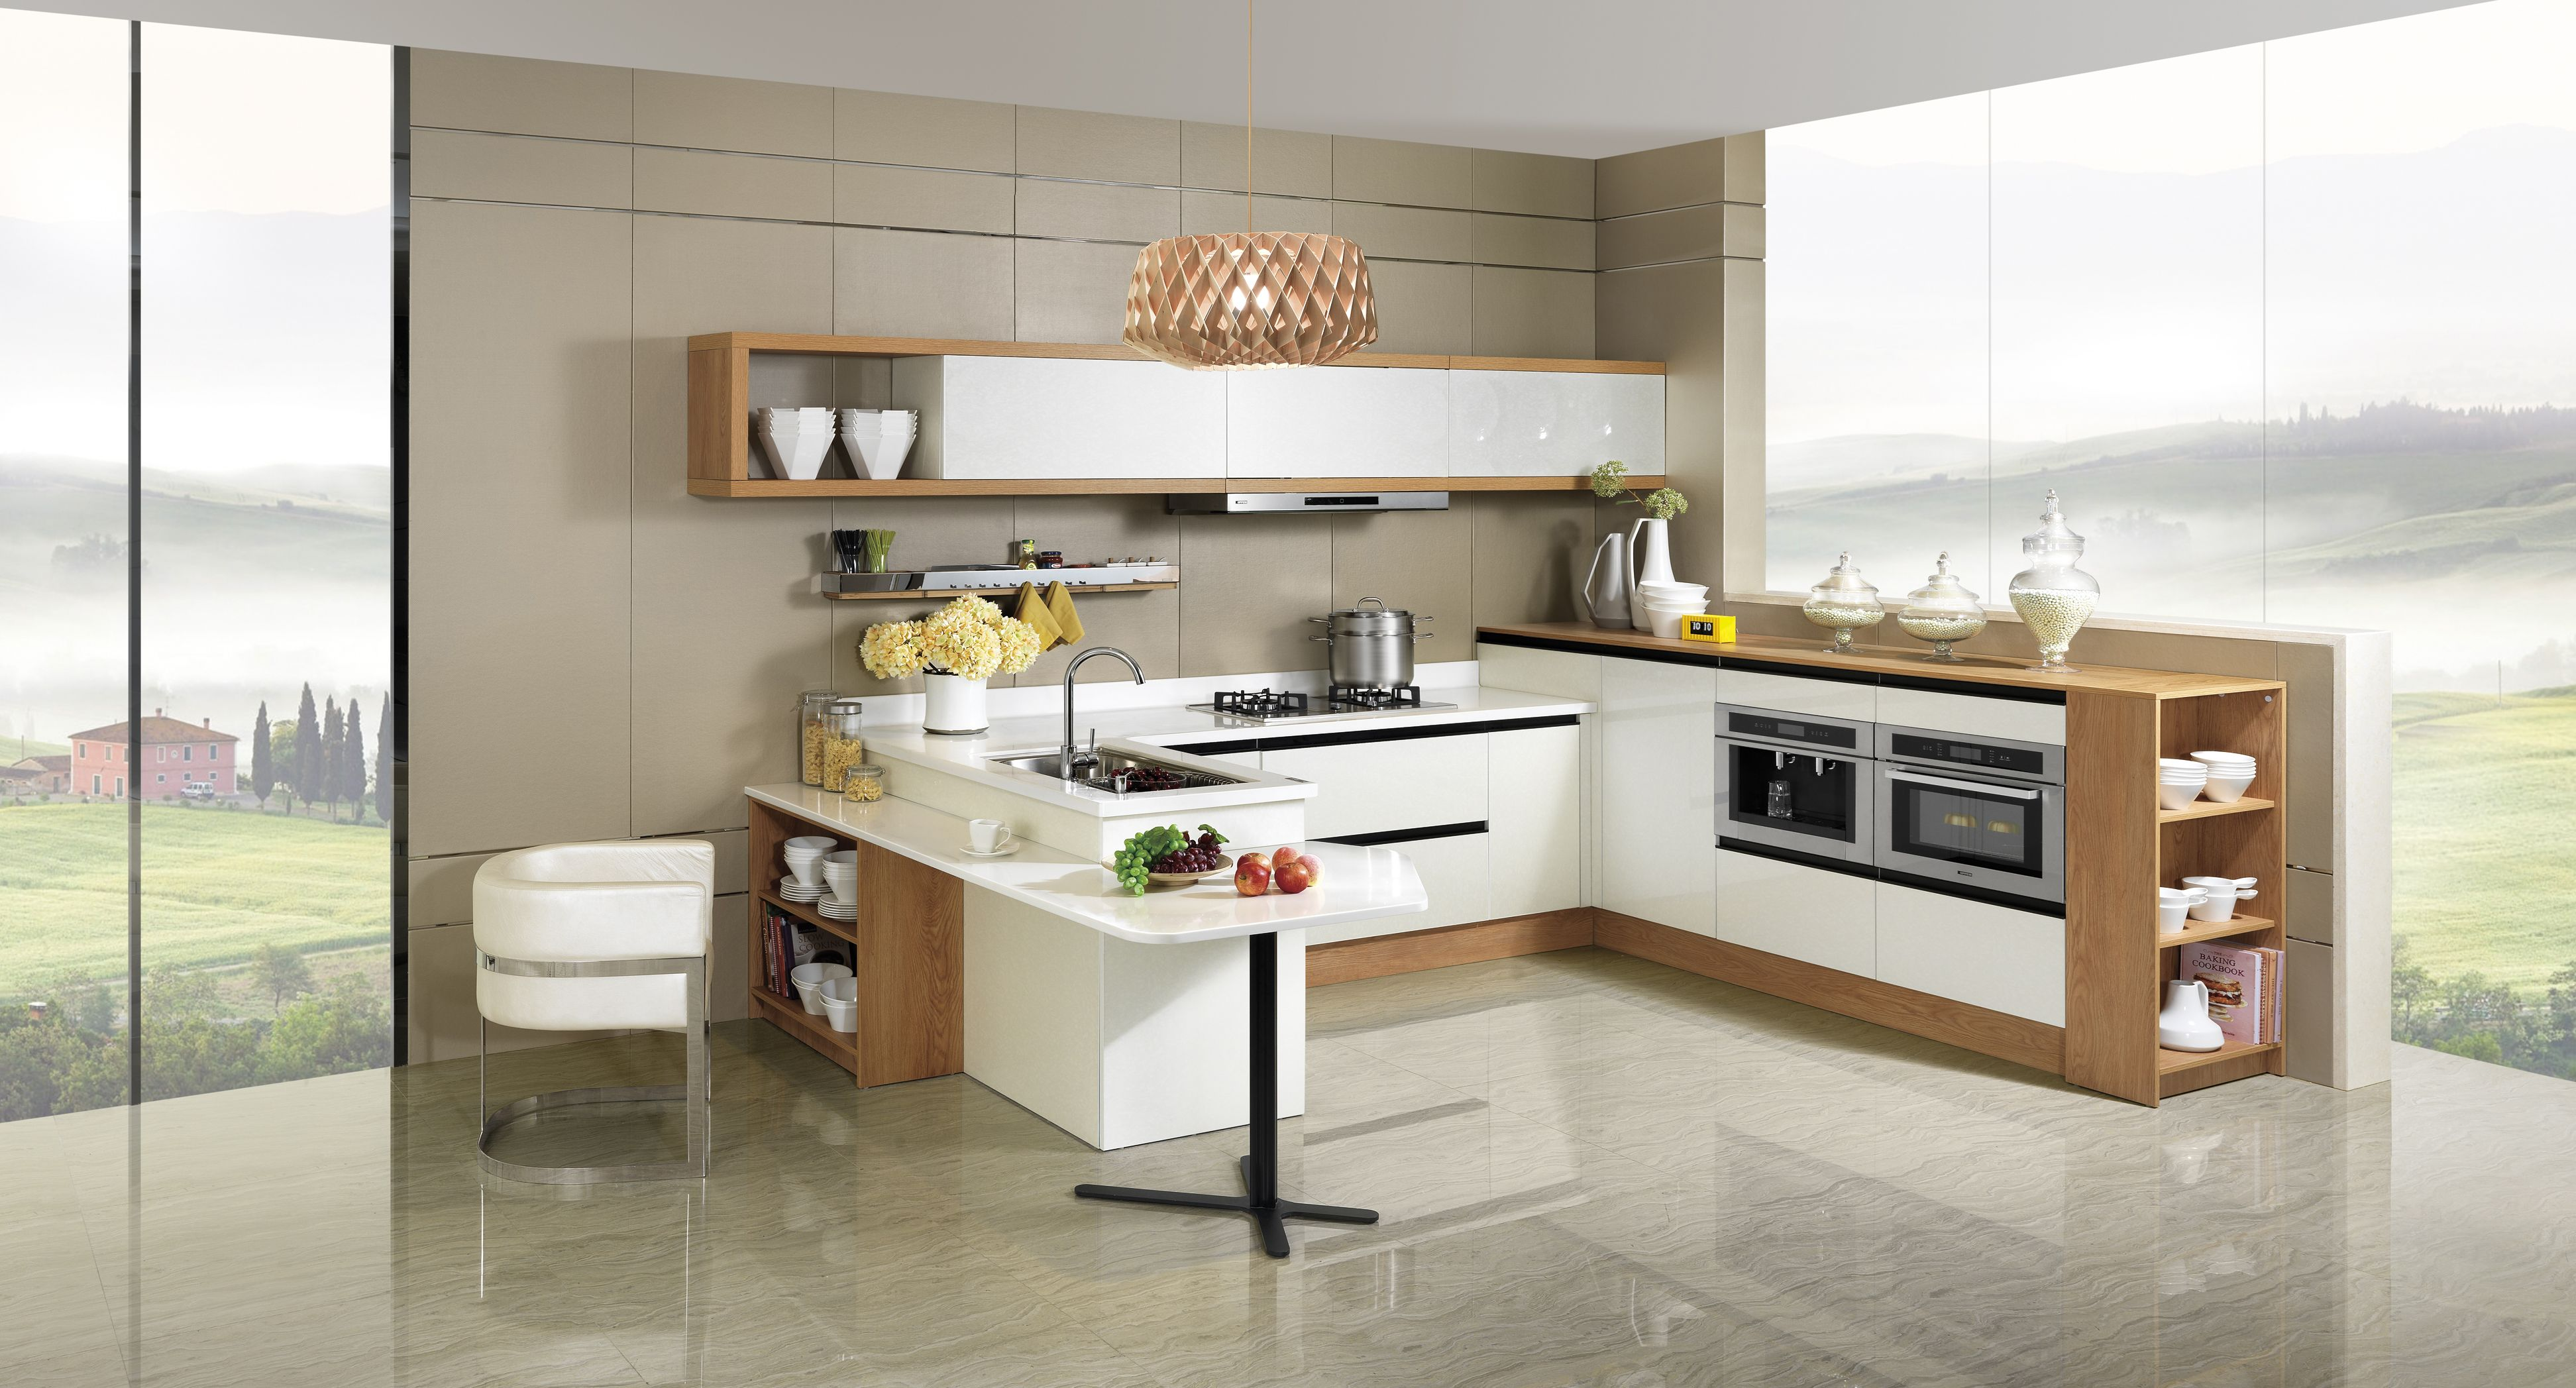 Pvc Kitchen Furniture Designs 2014 New Arrival Oppein Pvc Laminate Kitchen Cabinet In Guangzhou